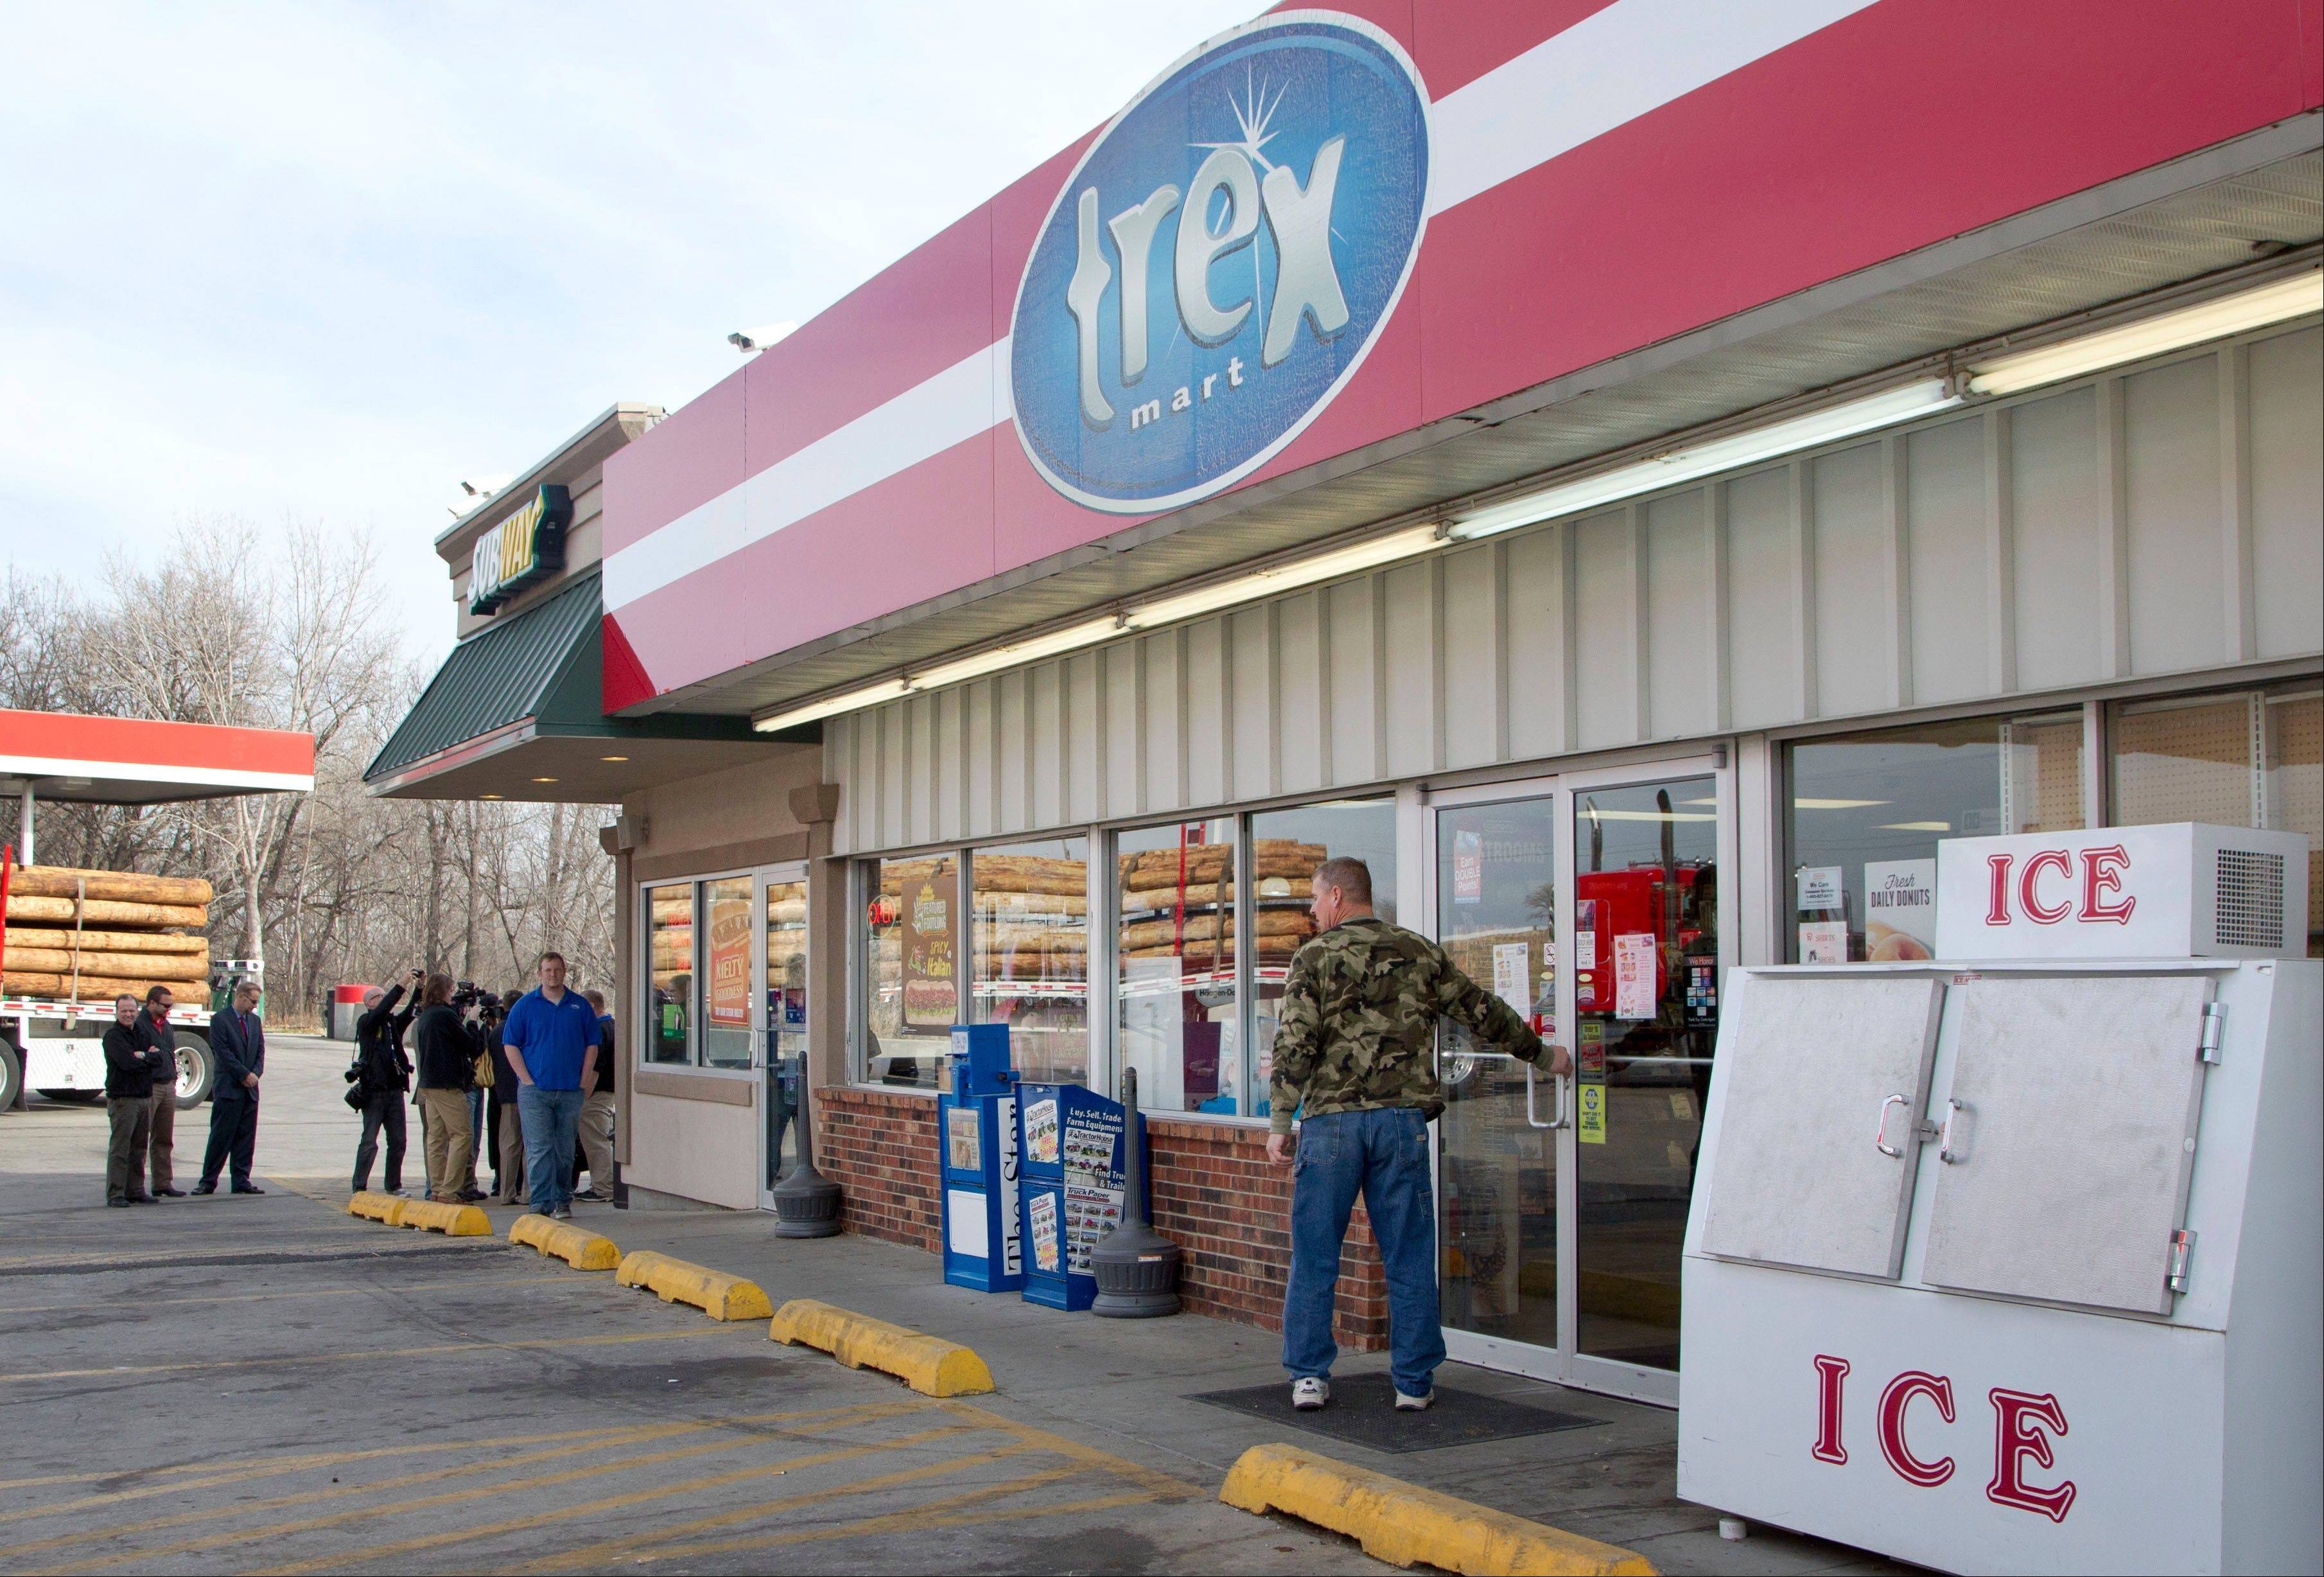 A customer enters Trex Mart as members of the news media gather in Dearborn, Mo., Thursday, Nov. 29, 2012. Trex Mart sold one of last night's winning Powerball tickets.